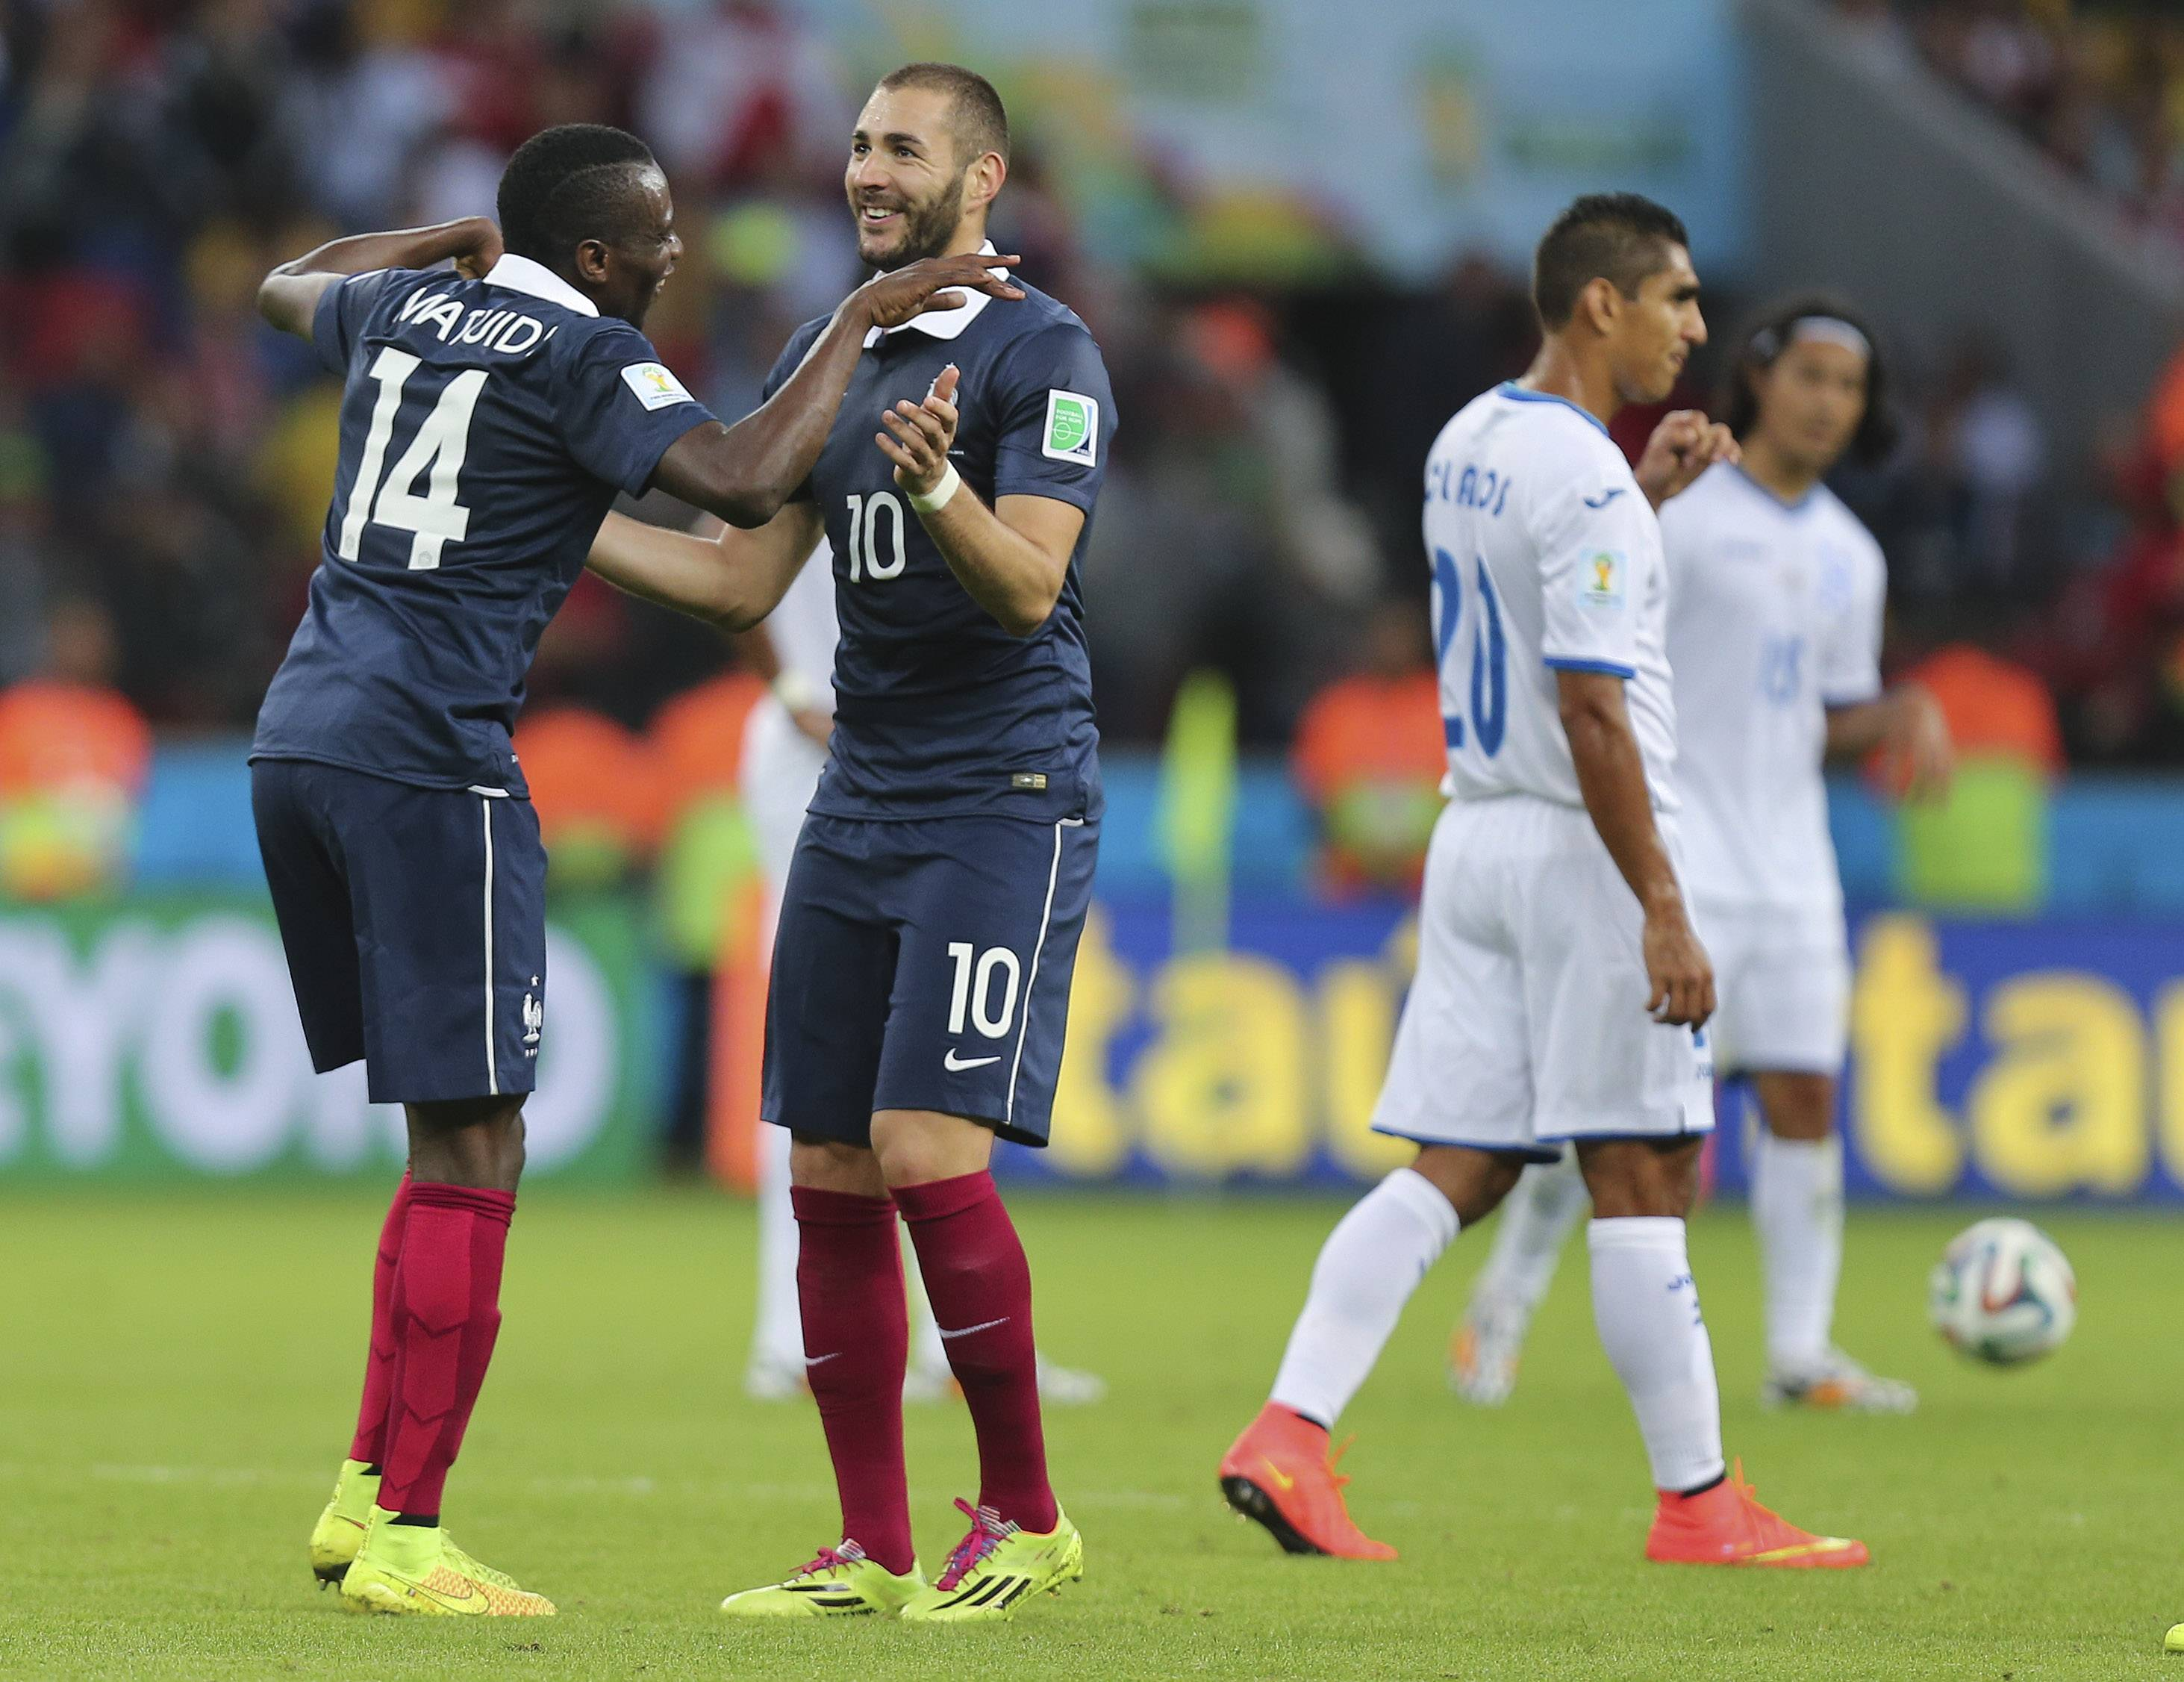 France's Karim Benzema (10) dances with Blaise Matuidi (14) after scoring the third goal during the group E World Cup soccer match between France and Honduras at the Estadio Beira-Rio in Porto Alegre, Brazil, Sunday, June 15, 2014.